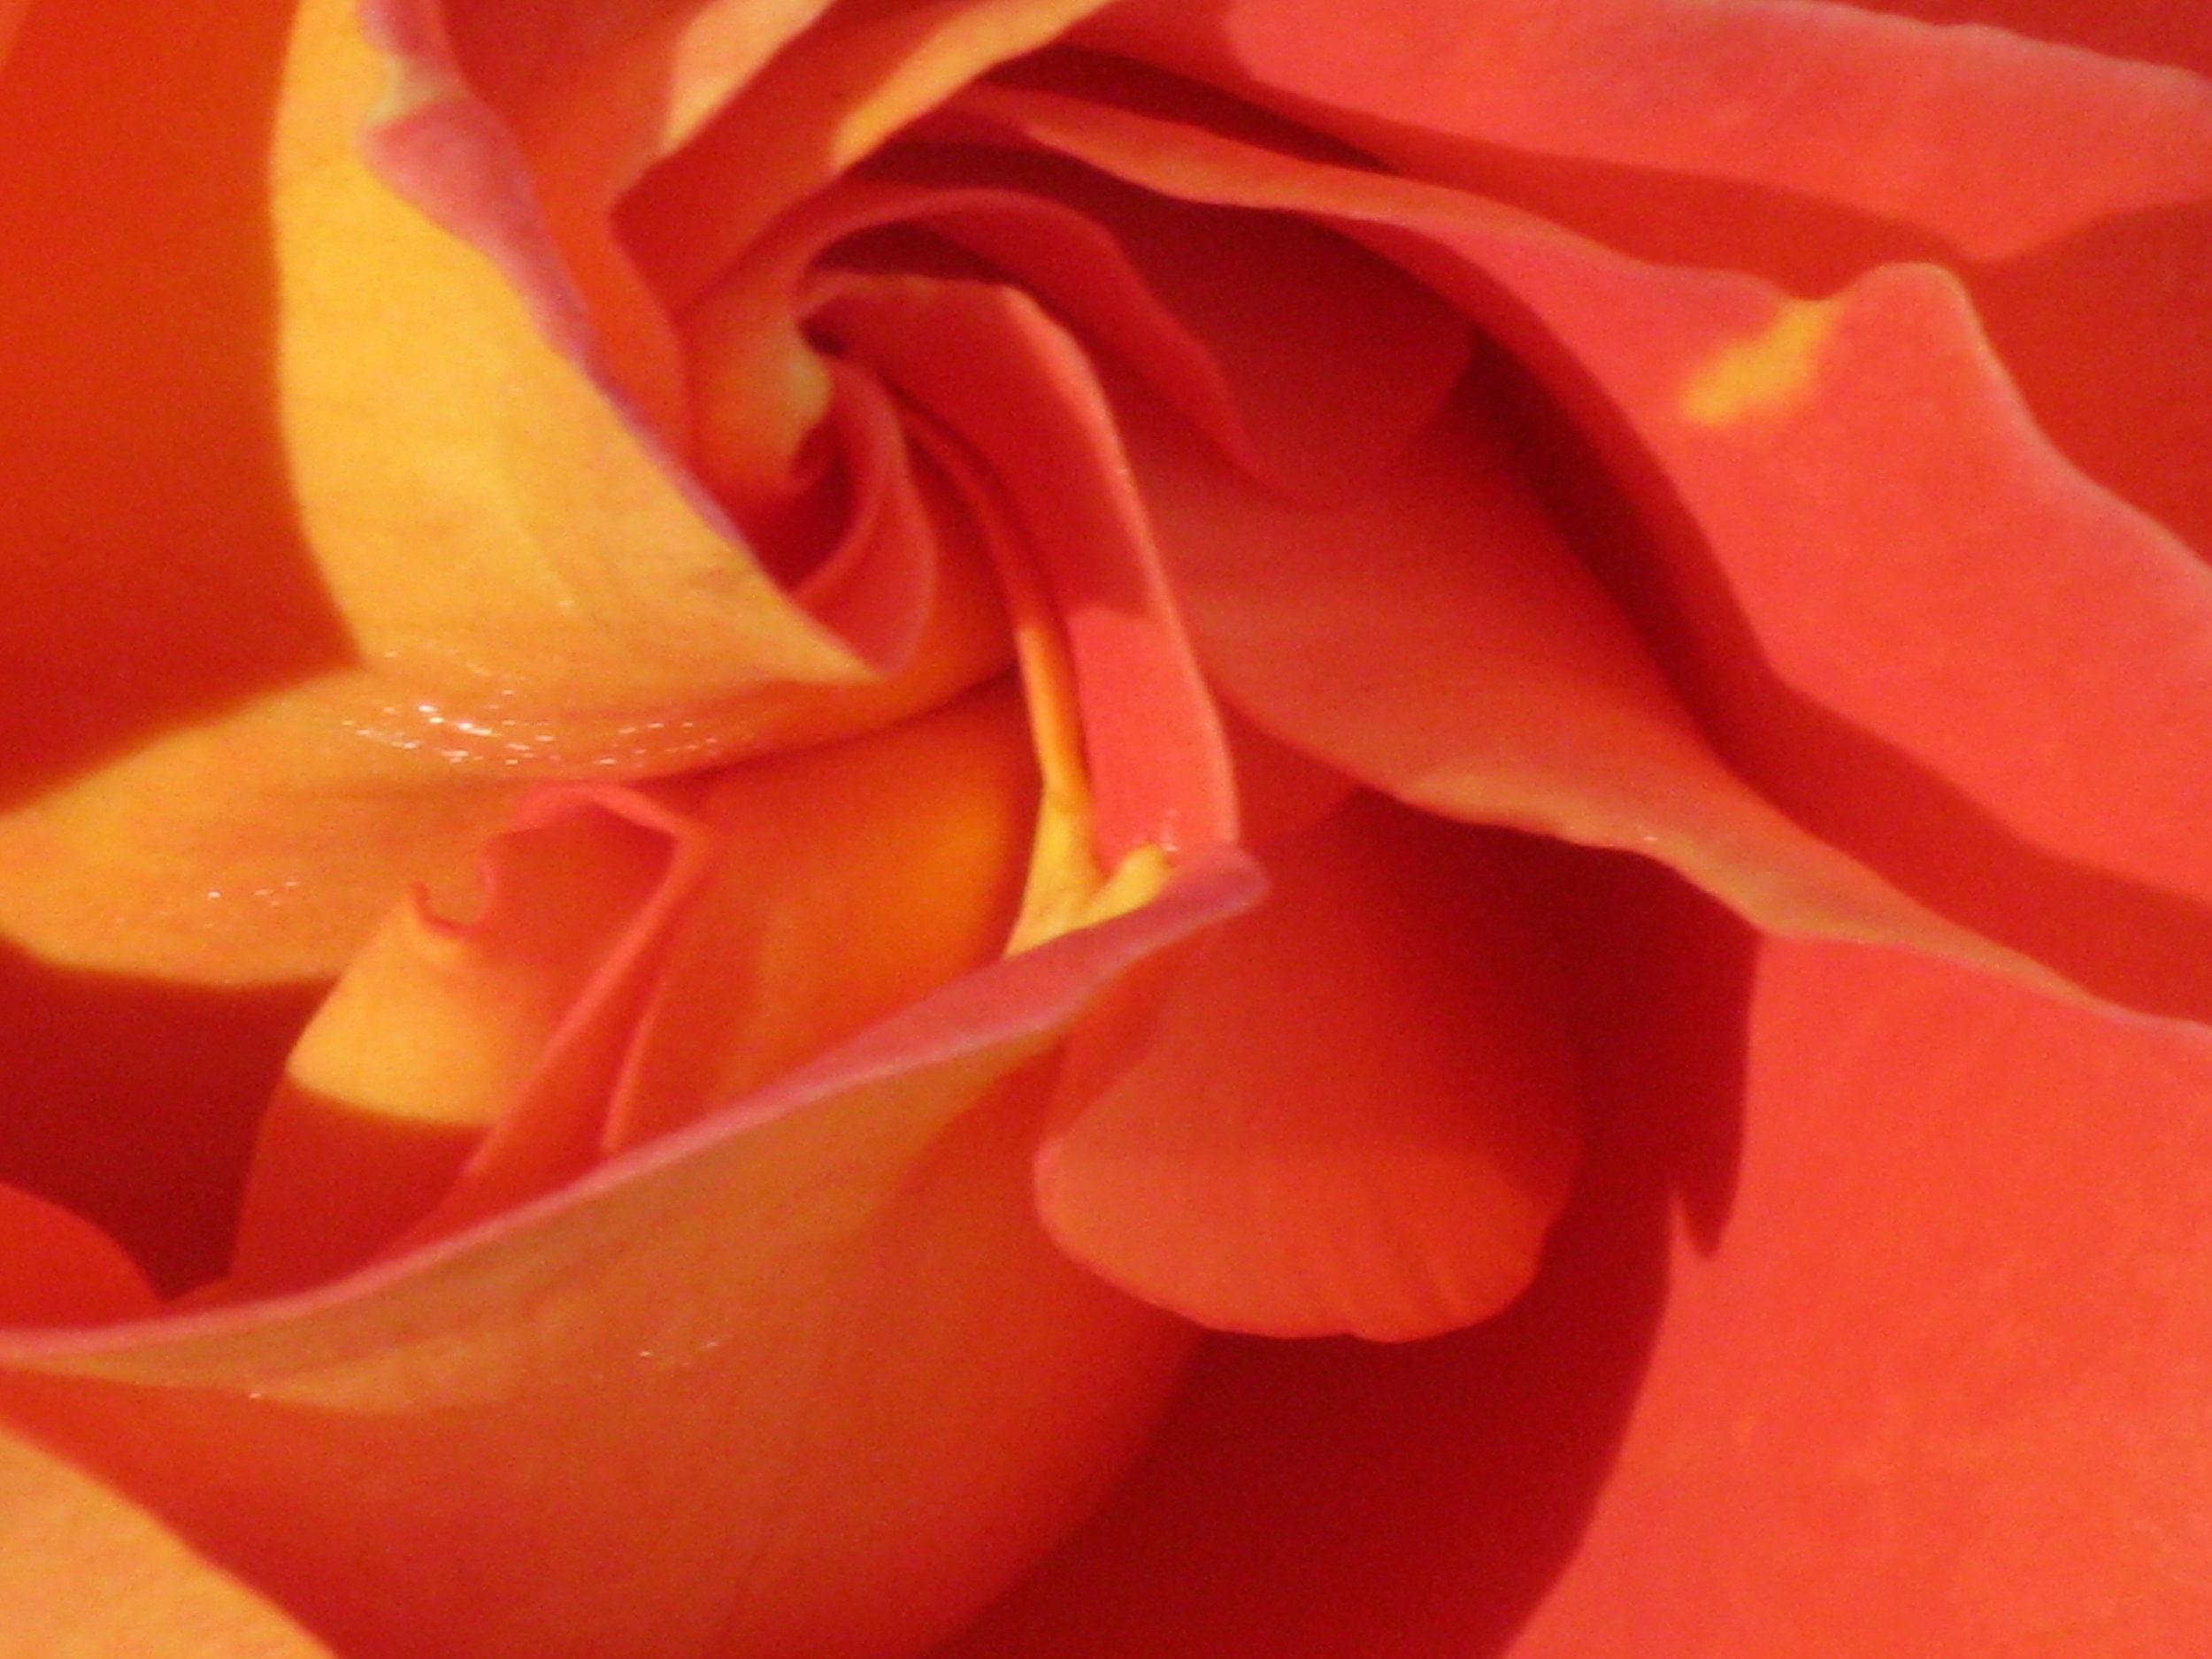 Rose, orange, intimage close-up.JPG